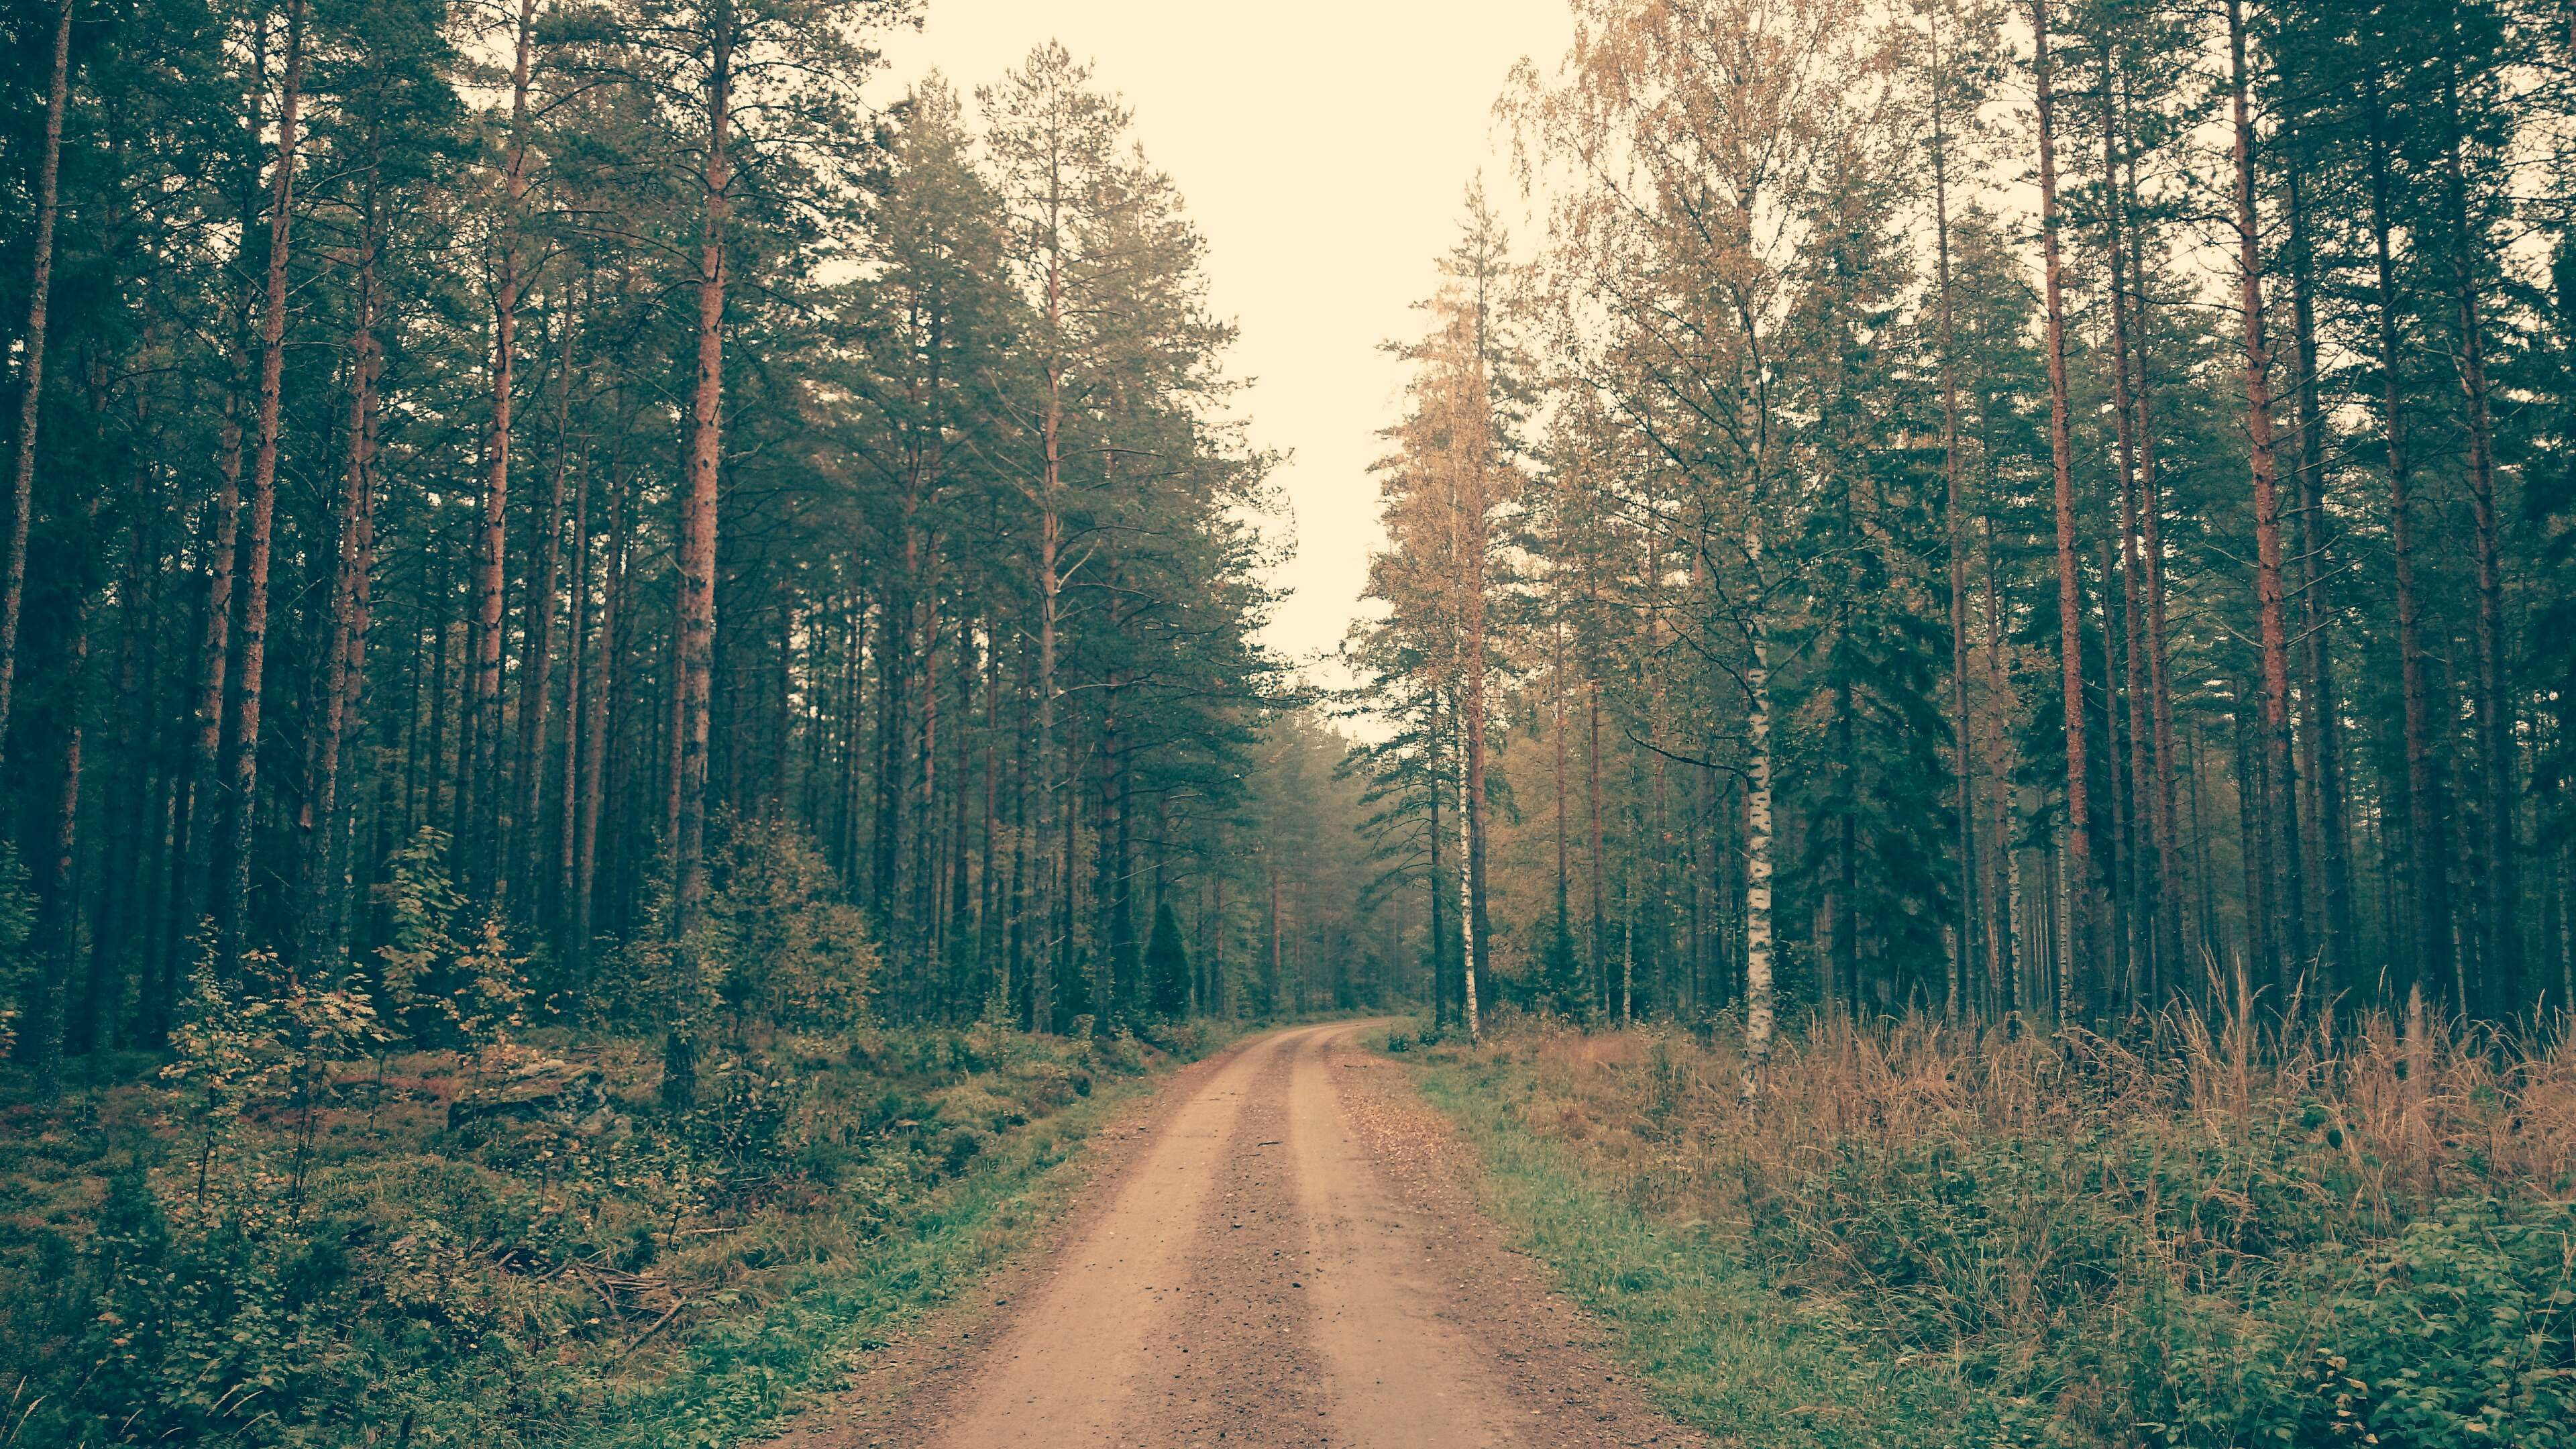 Aforestation Dirt Road Dusty Road Forest Nature Nature Wallpaper Pines Trees Tree Photography Scenic Photography Scenic Hd wallpaper path pine trees forest